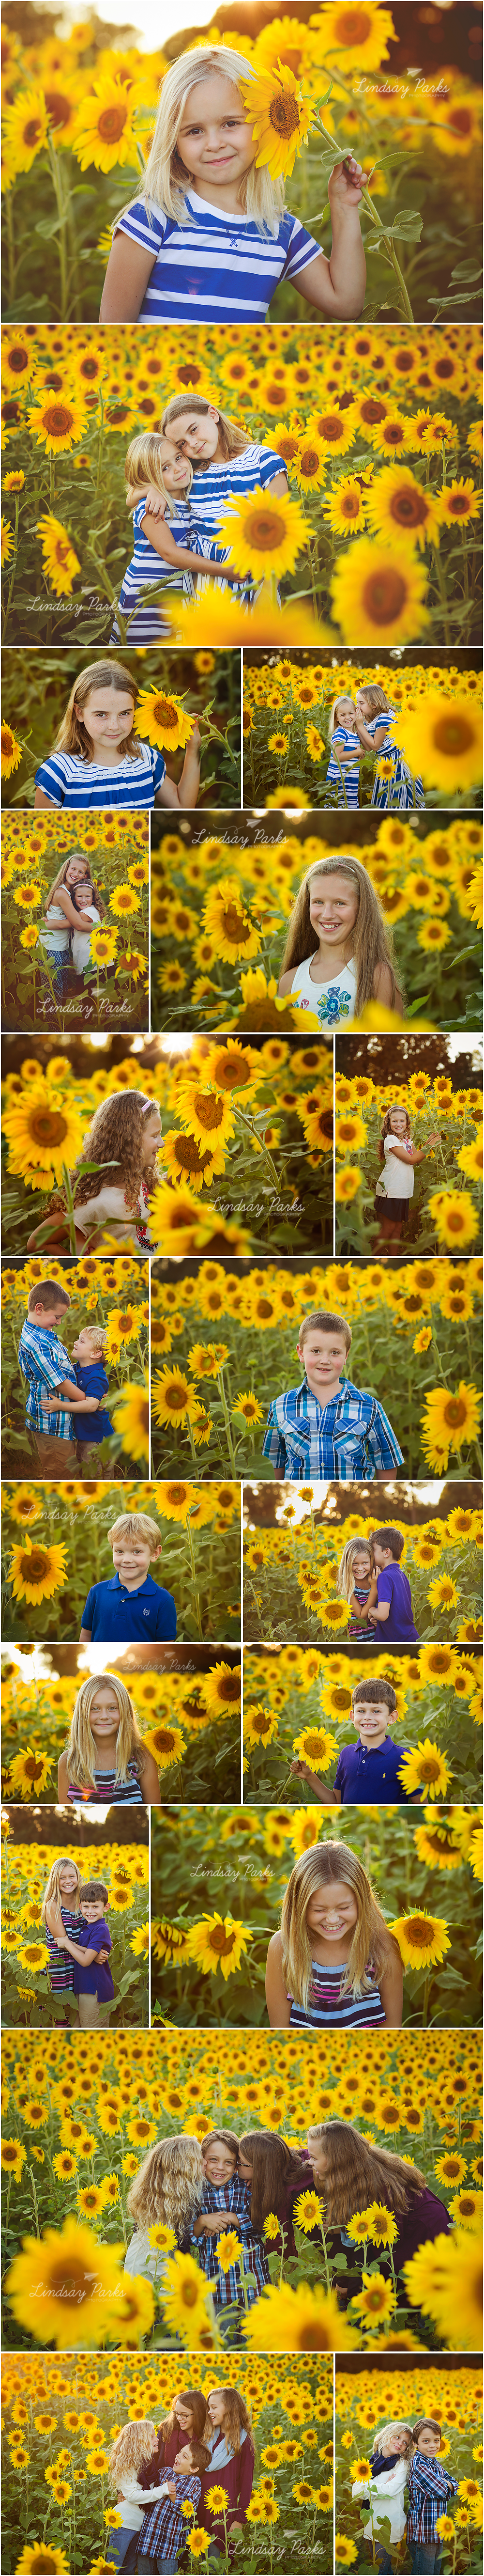 harford_county_maryland_child_photographer_sunflowers